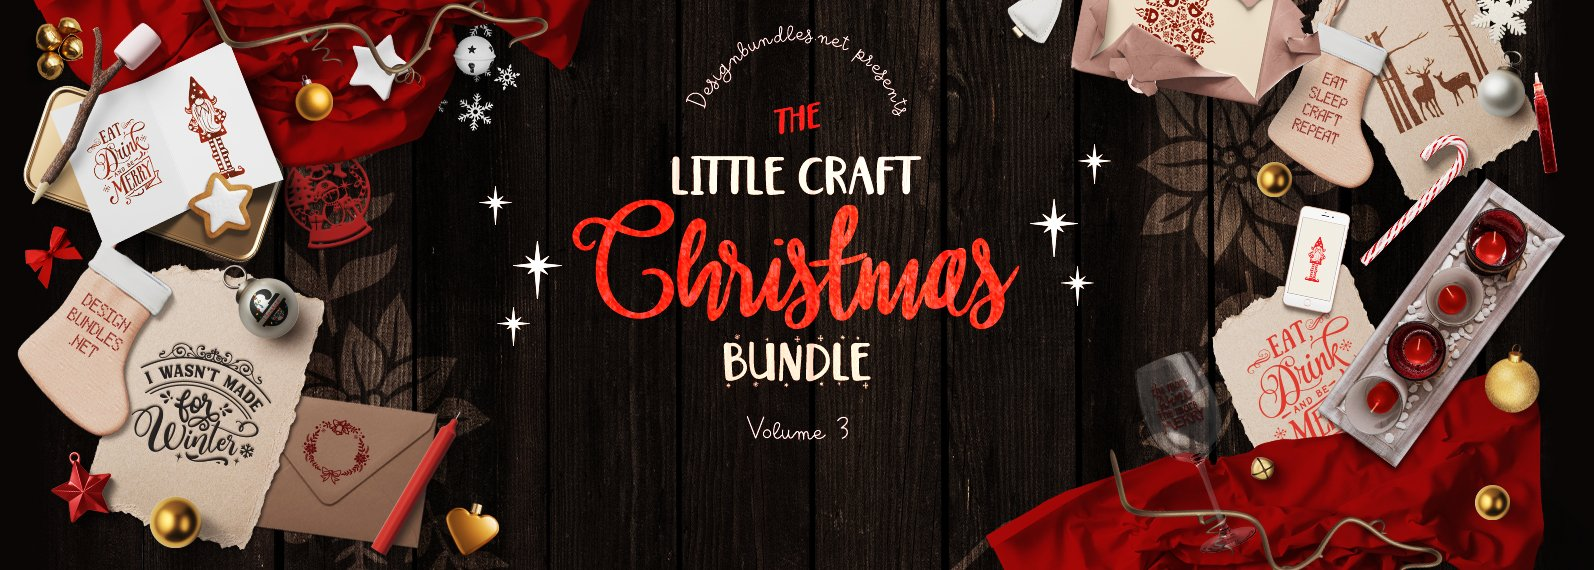 The Little Craft Christmas Bundle 3 Cover